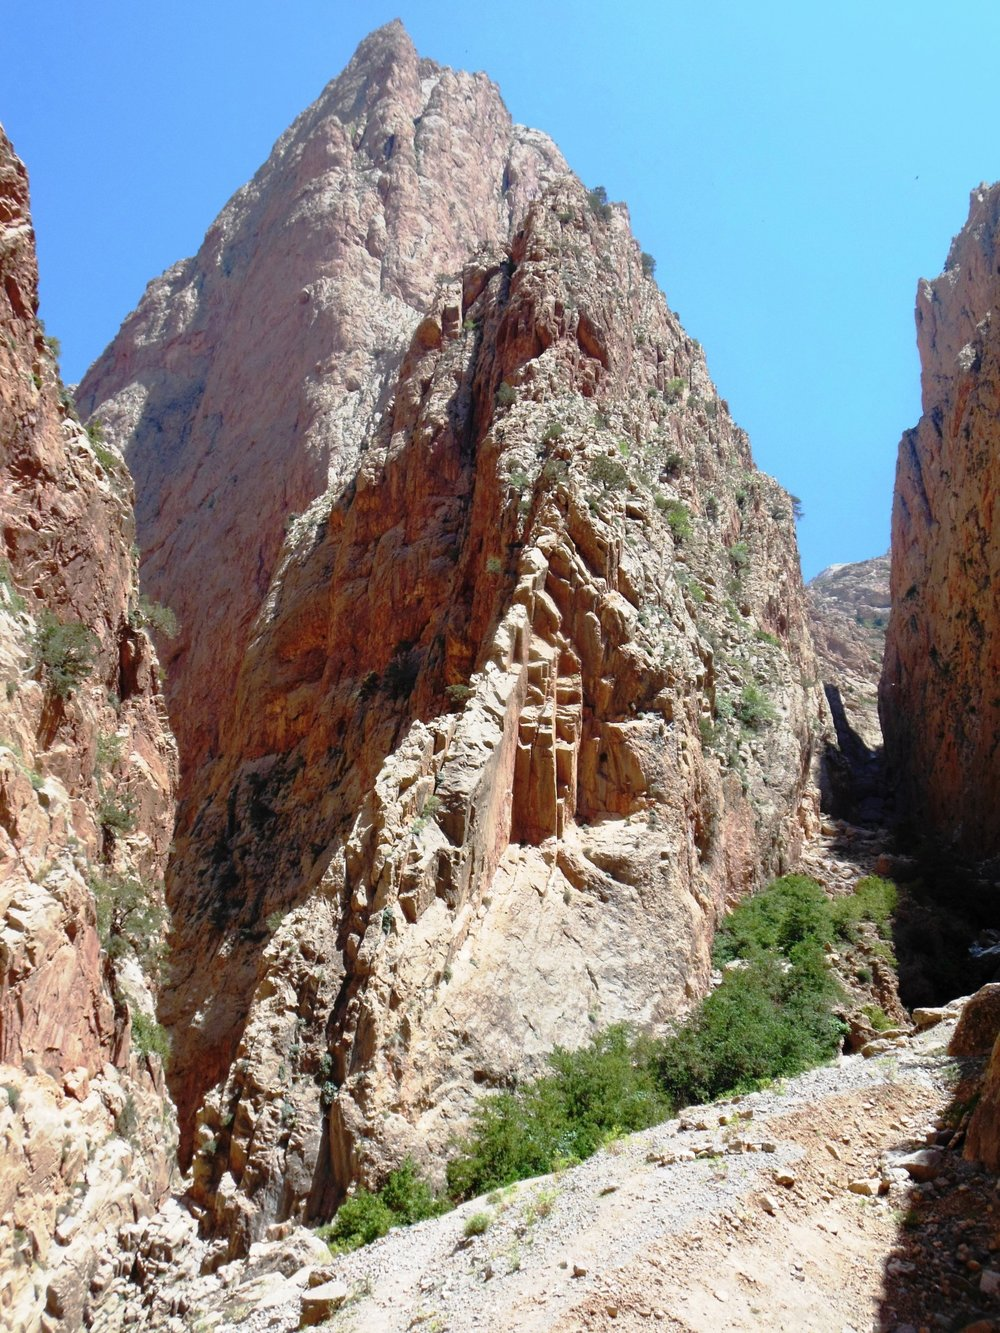 The location of the main Taghia Springs and slot canyon.